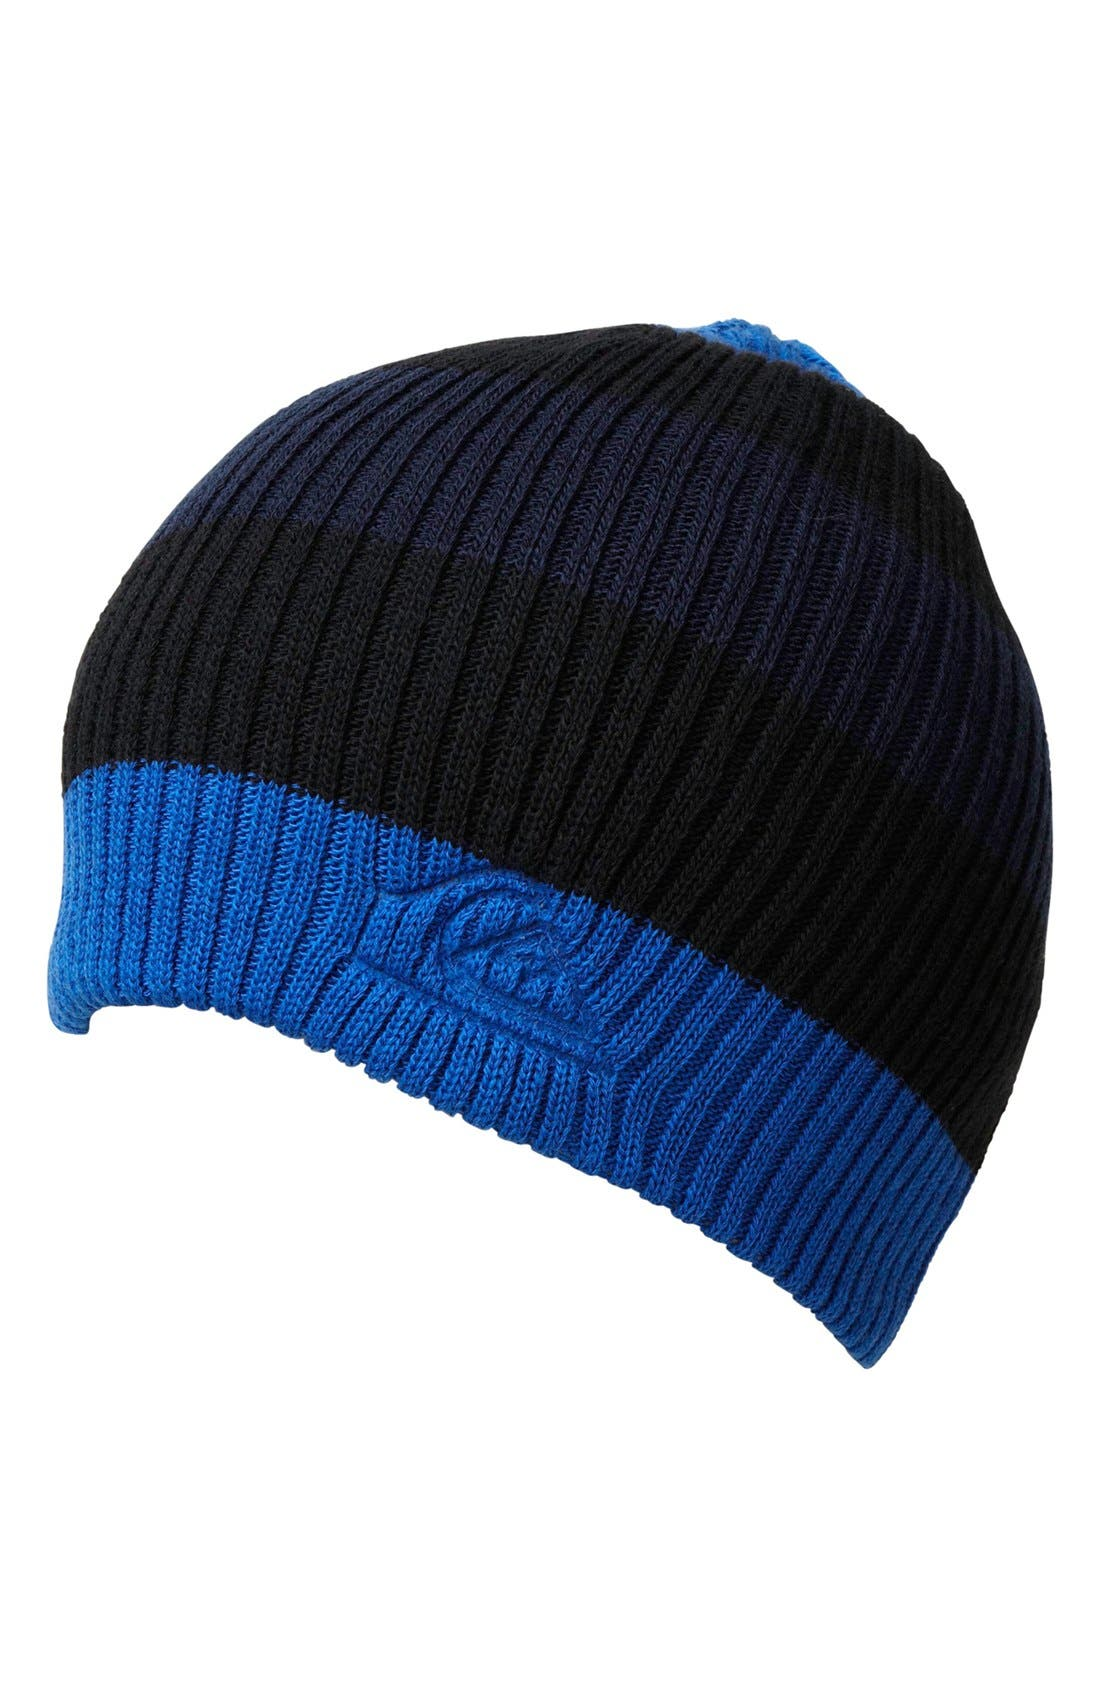 Alternate Image 1 Selected - Quiksilver 'Cramo' Beanie (Toddler Boys)